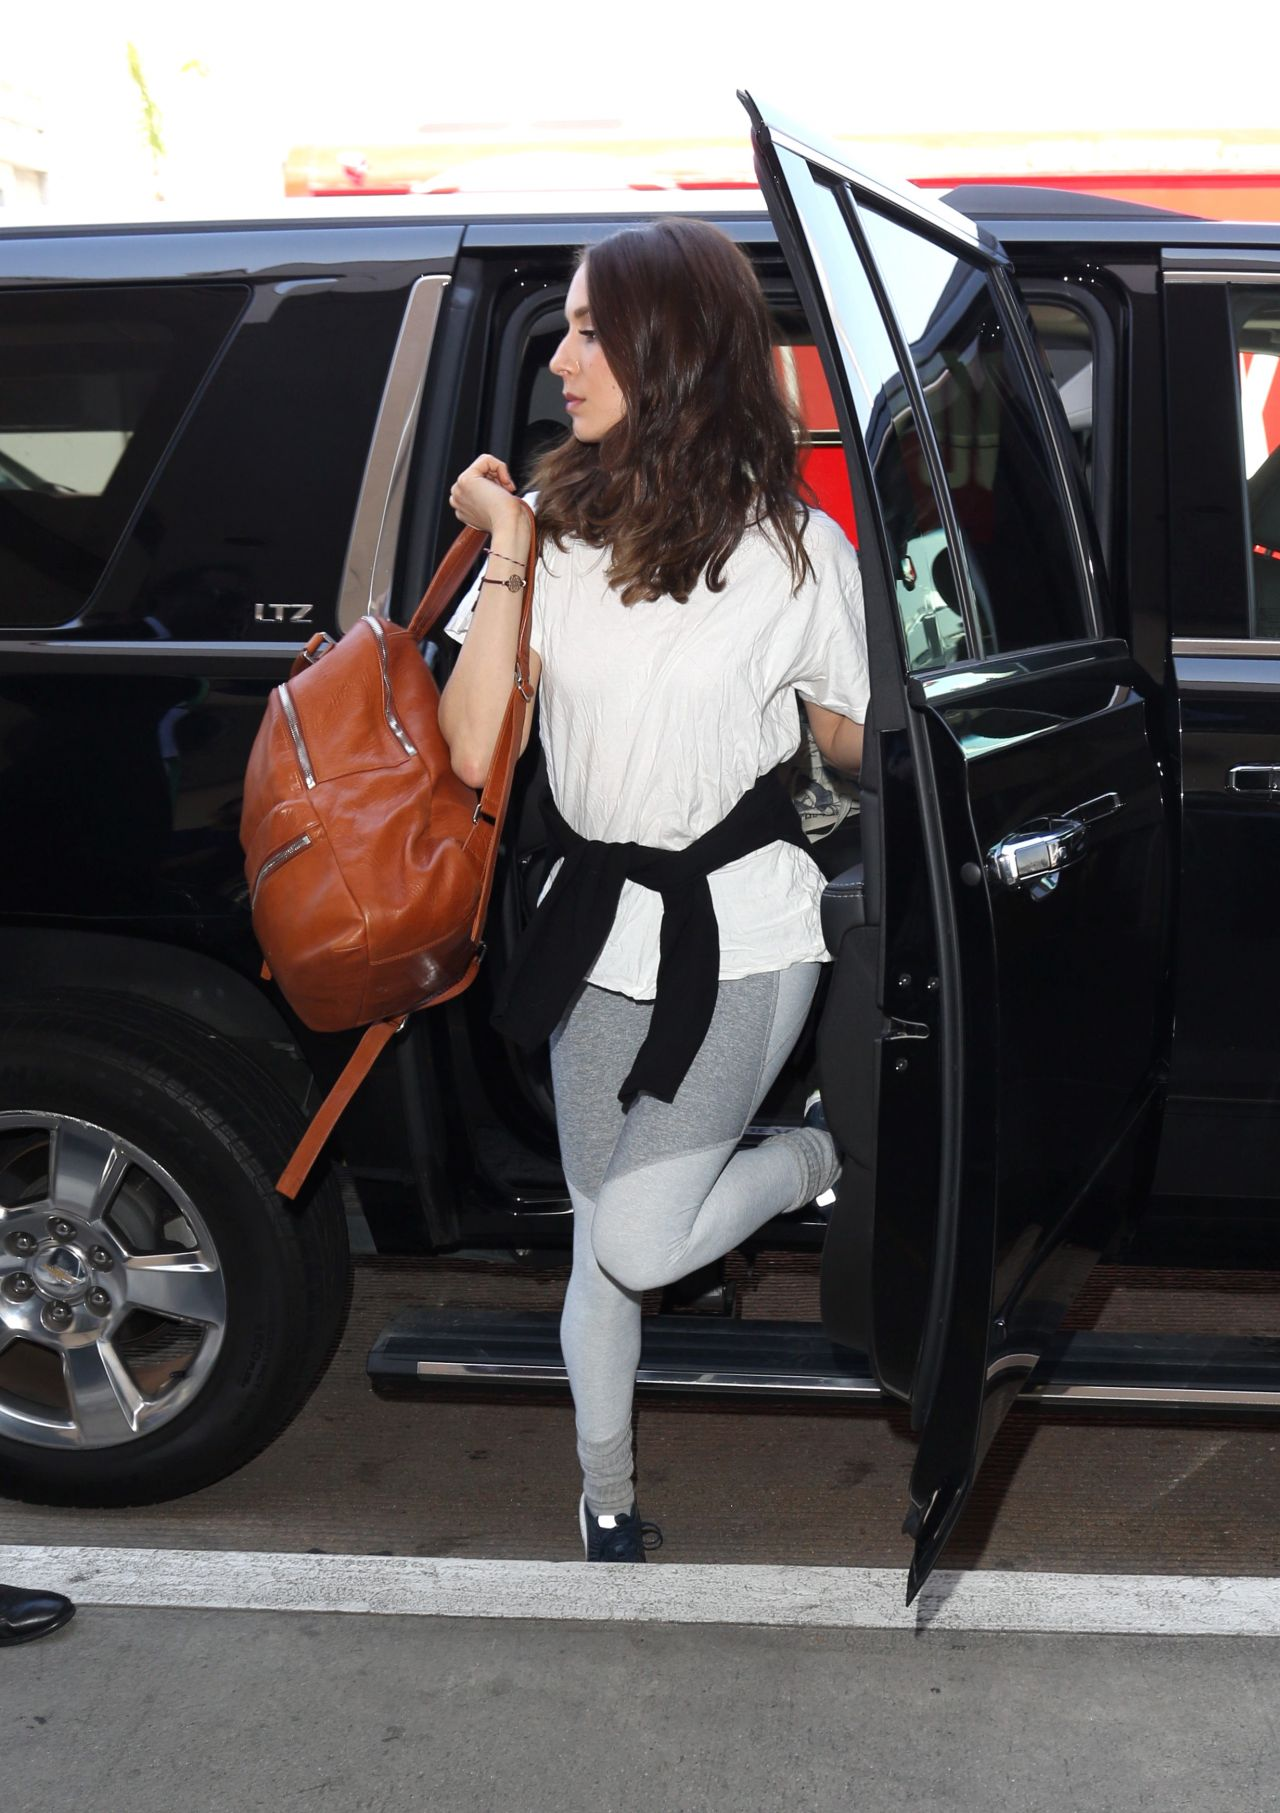 Troian bellisario travel outfit at lax airport - 2019 year